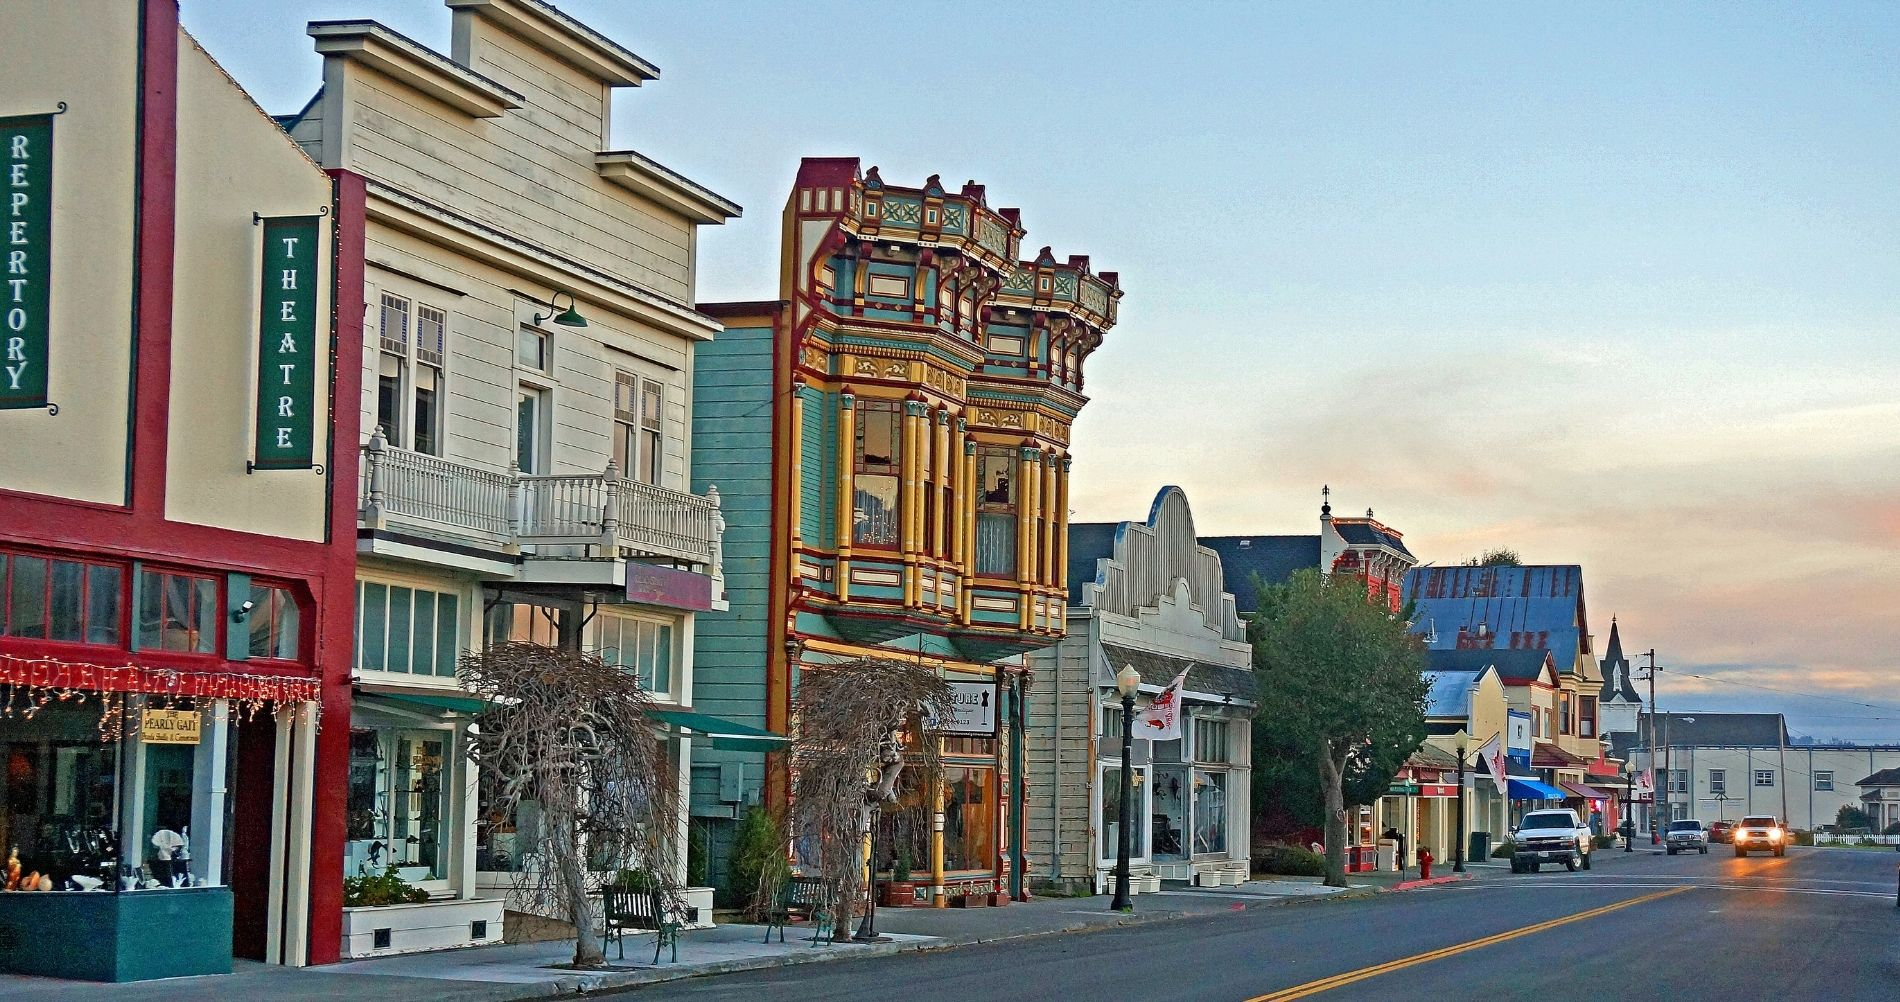 Downtown Ferndale CA with 19th century Victorian-style buildings